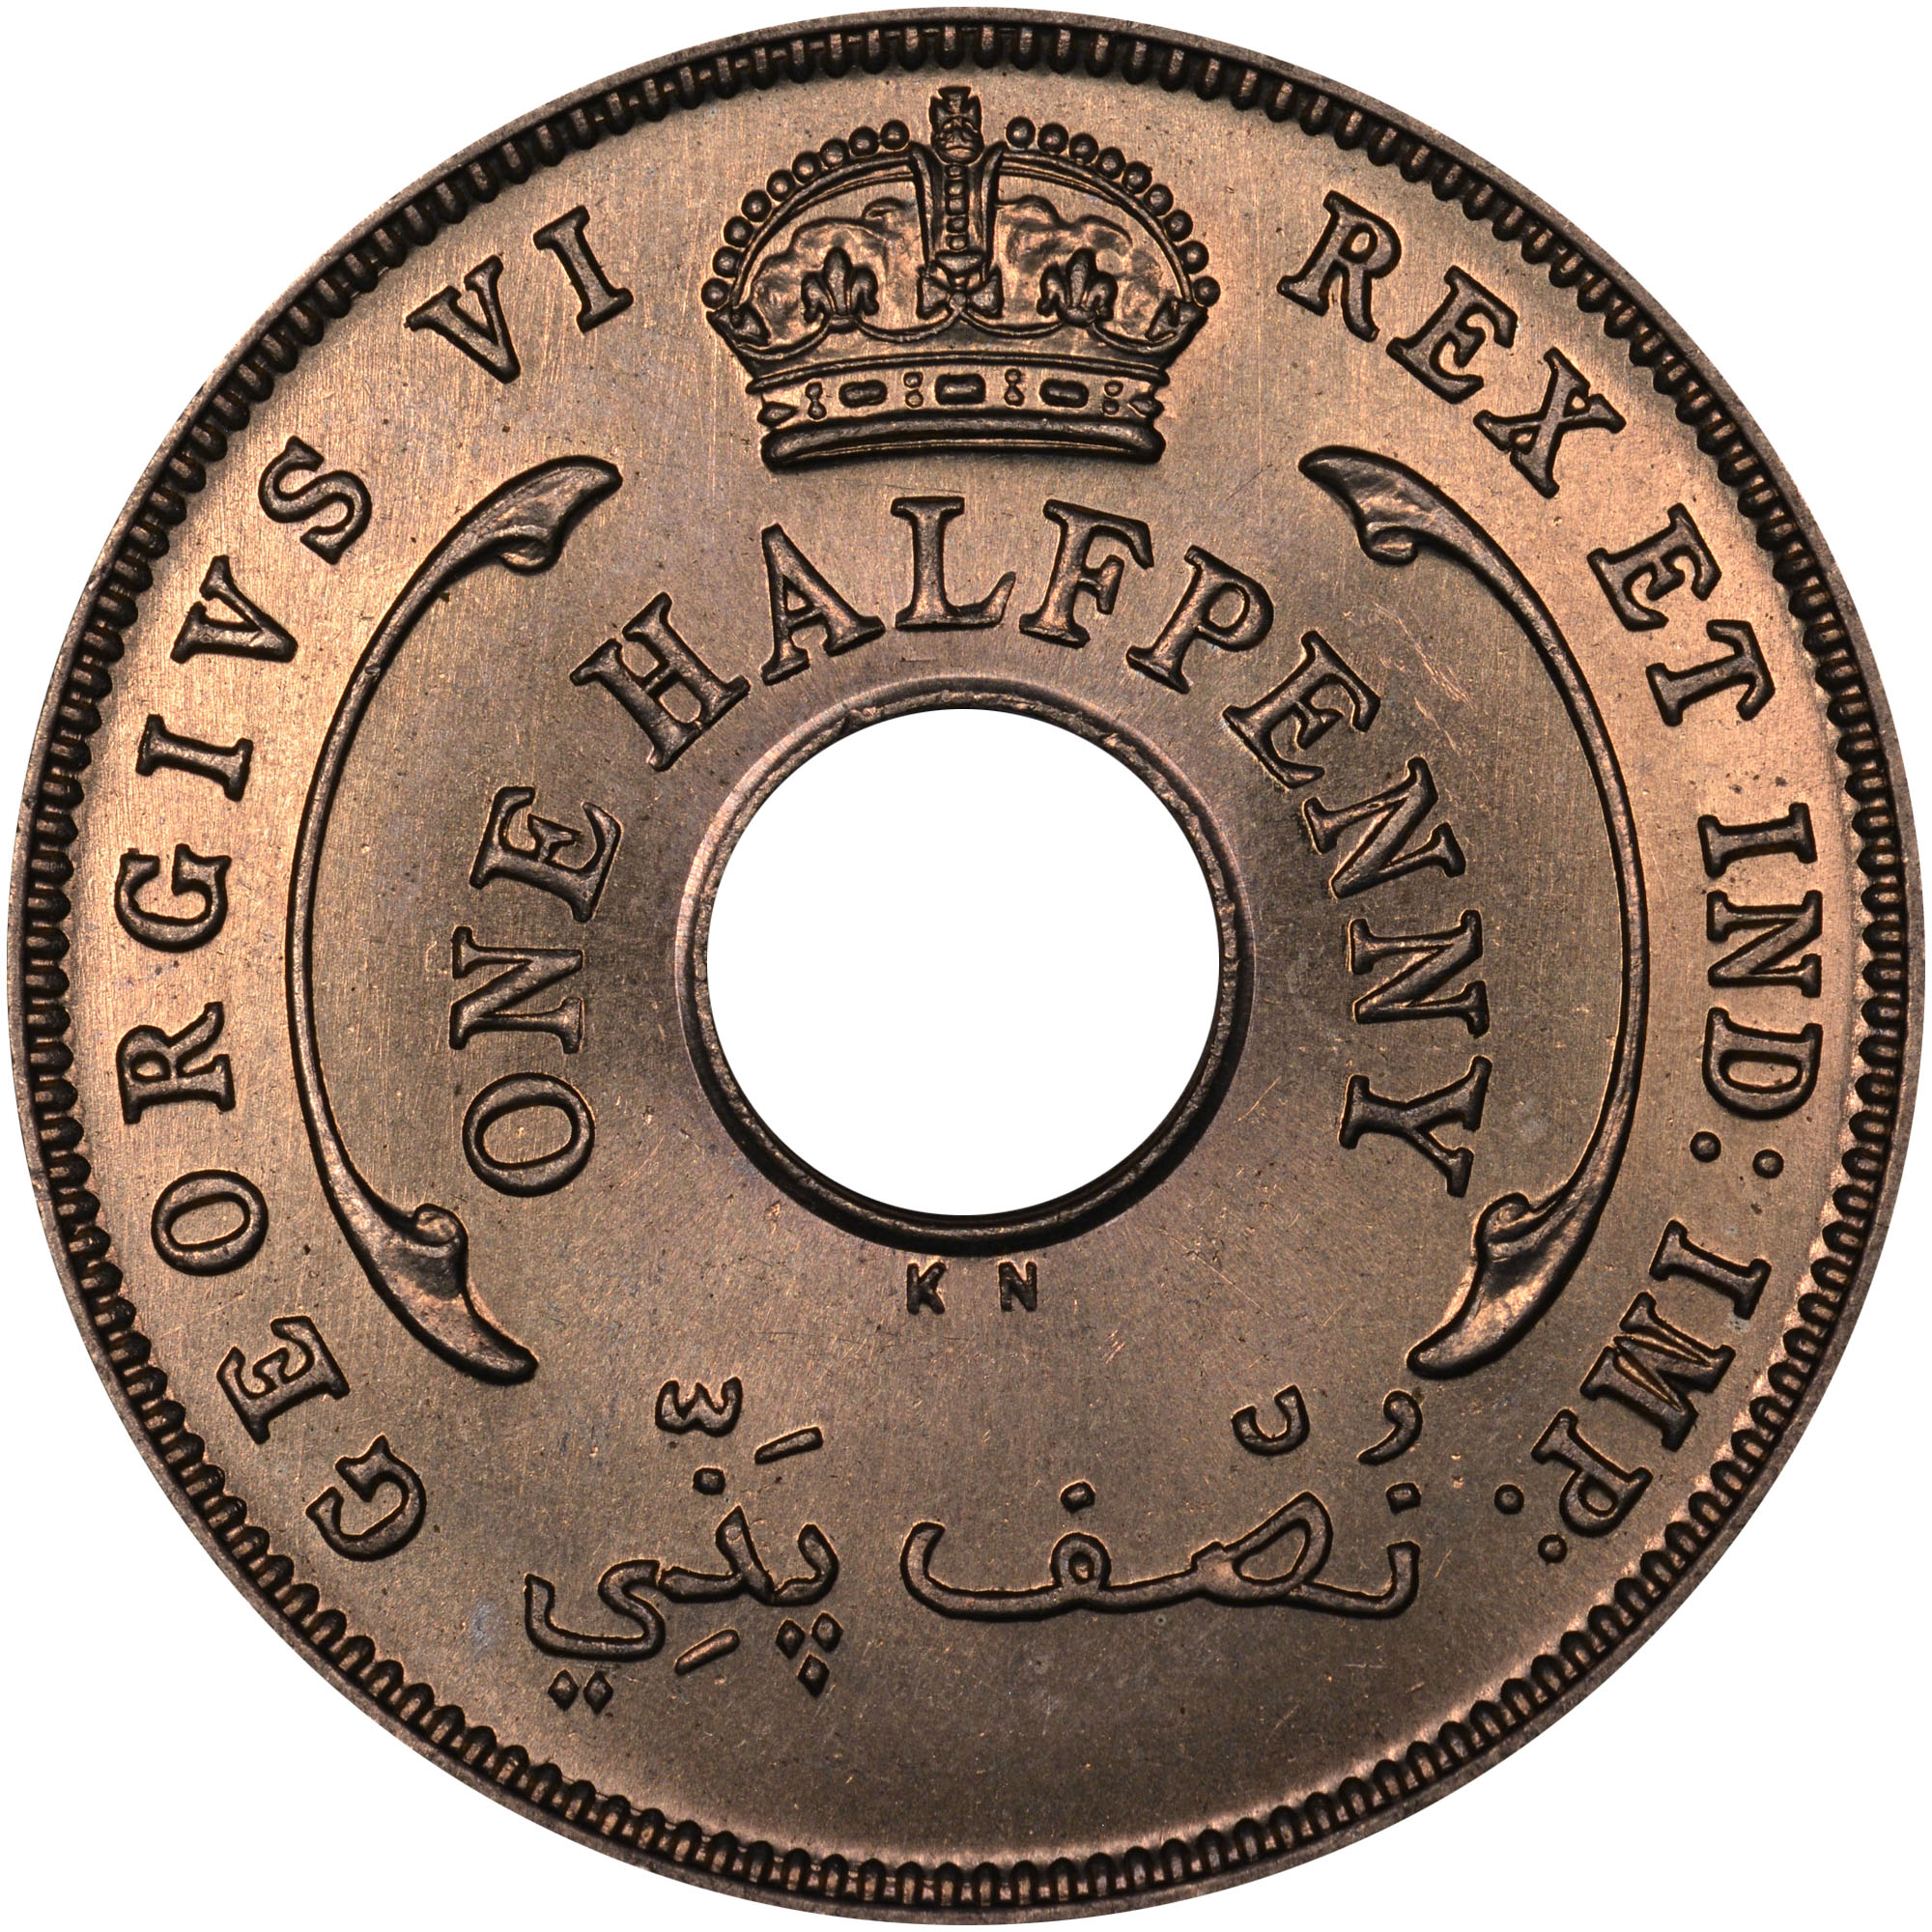 1937-1947 British West Africa 1/2 Penny obverse